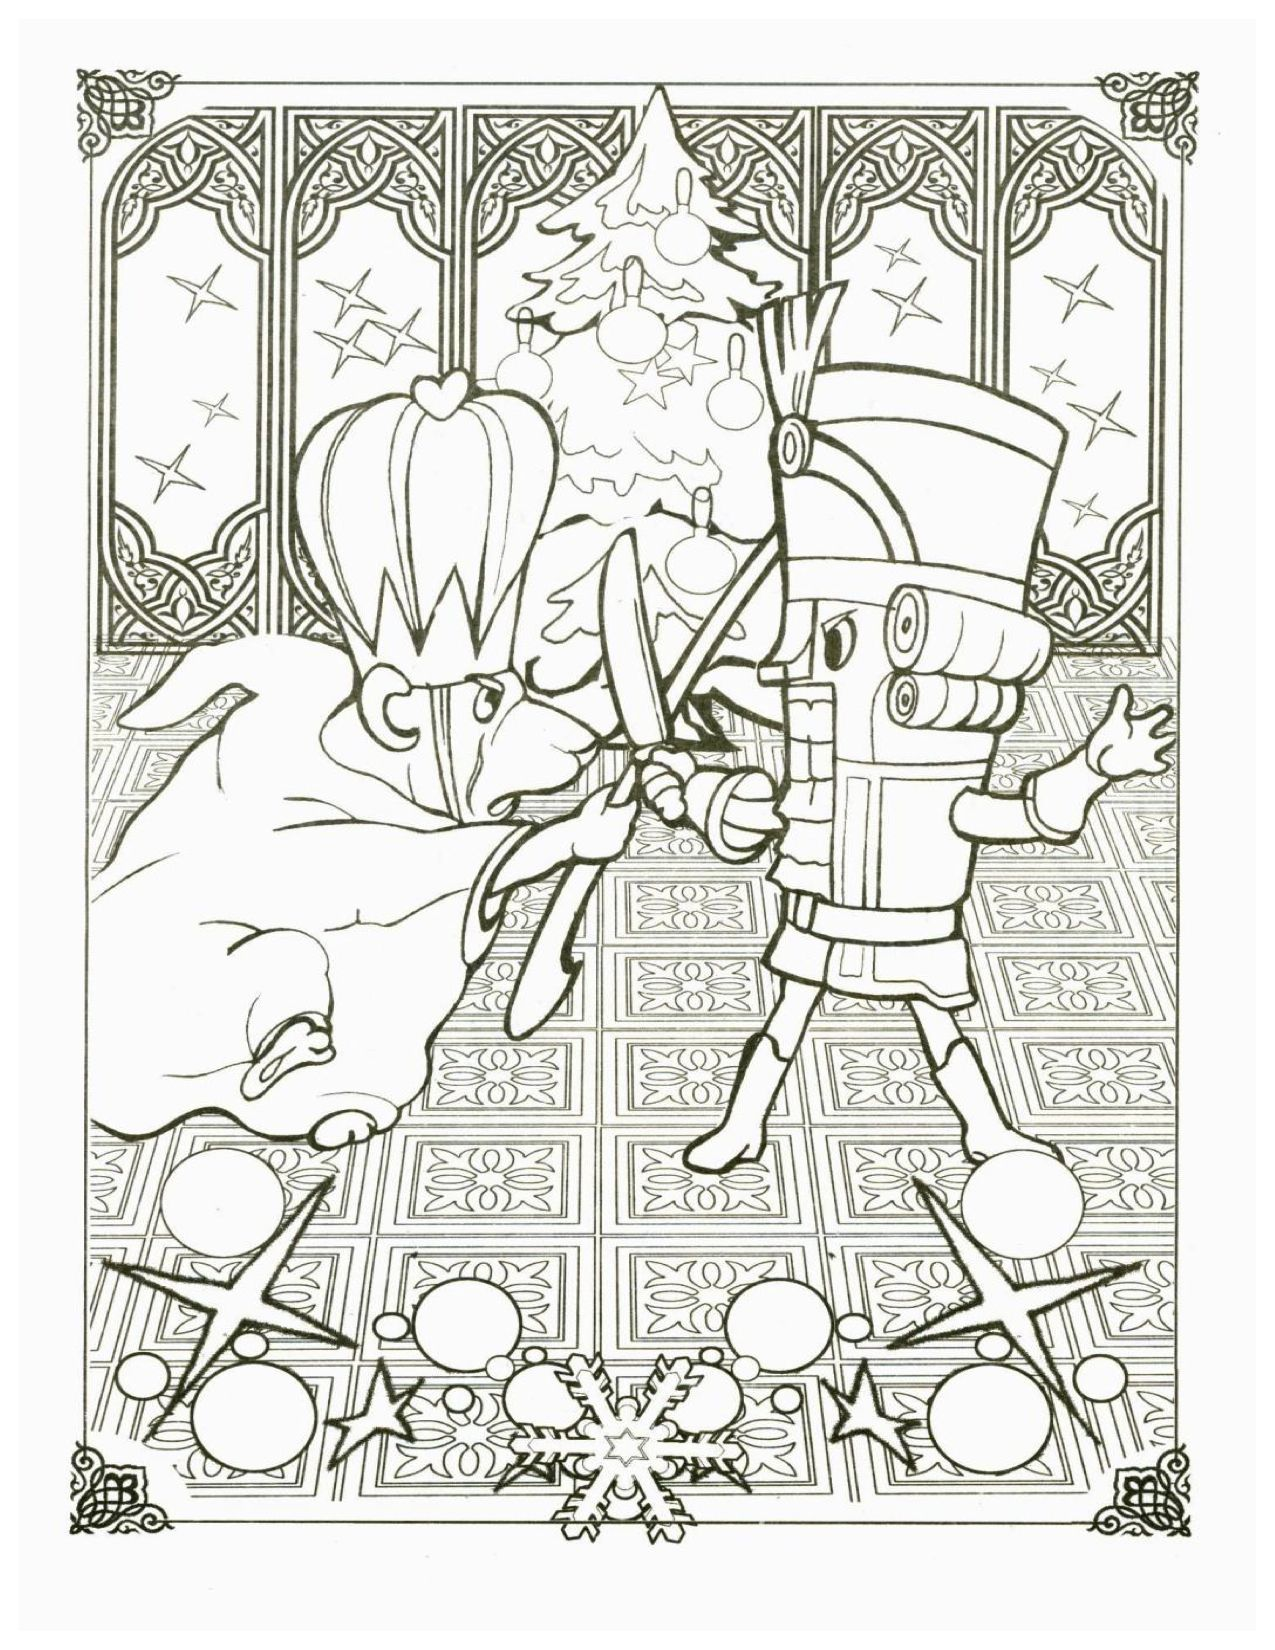 sugar plum fairies coloring pages - photo#9